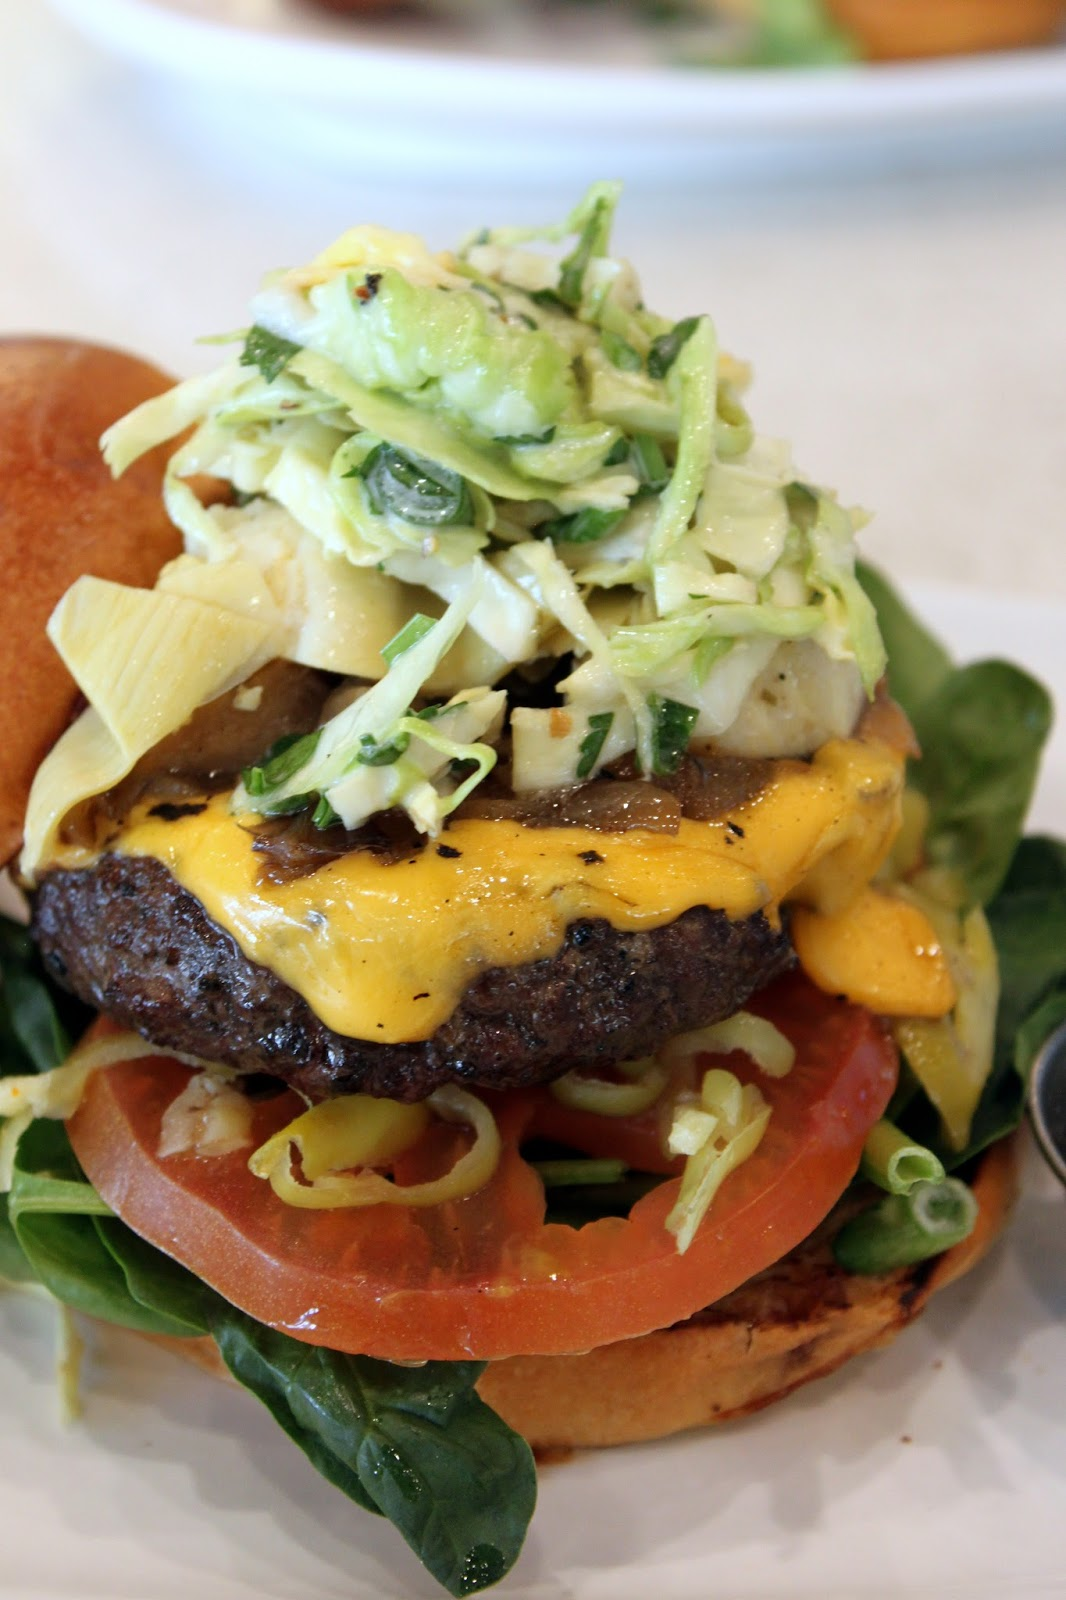 Burger - Planted Dishes - Point of Interest